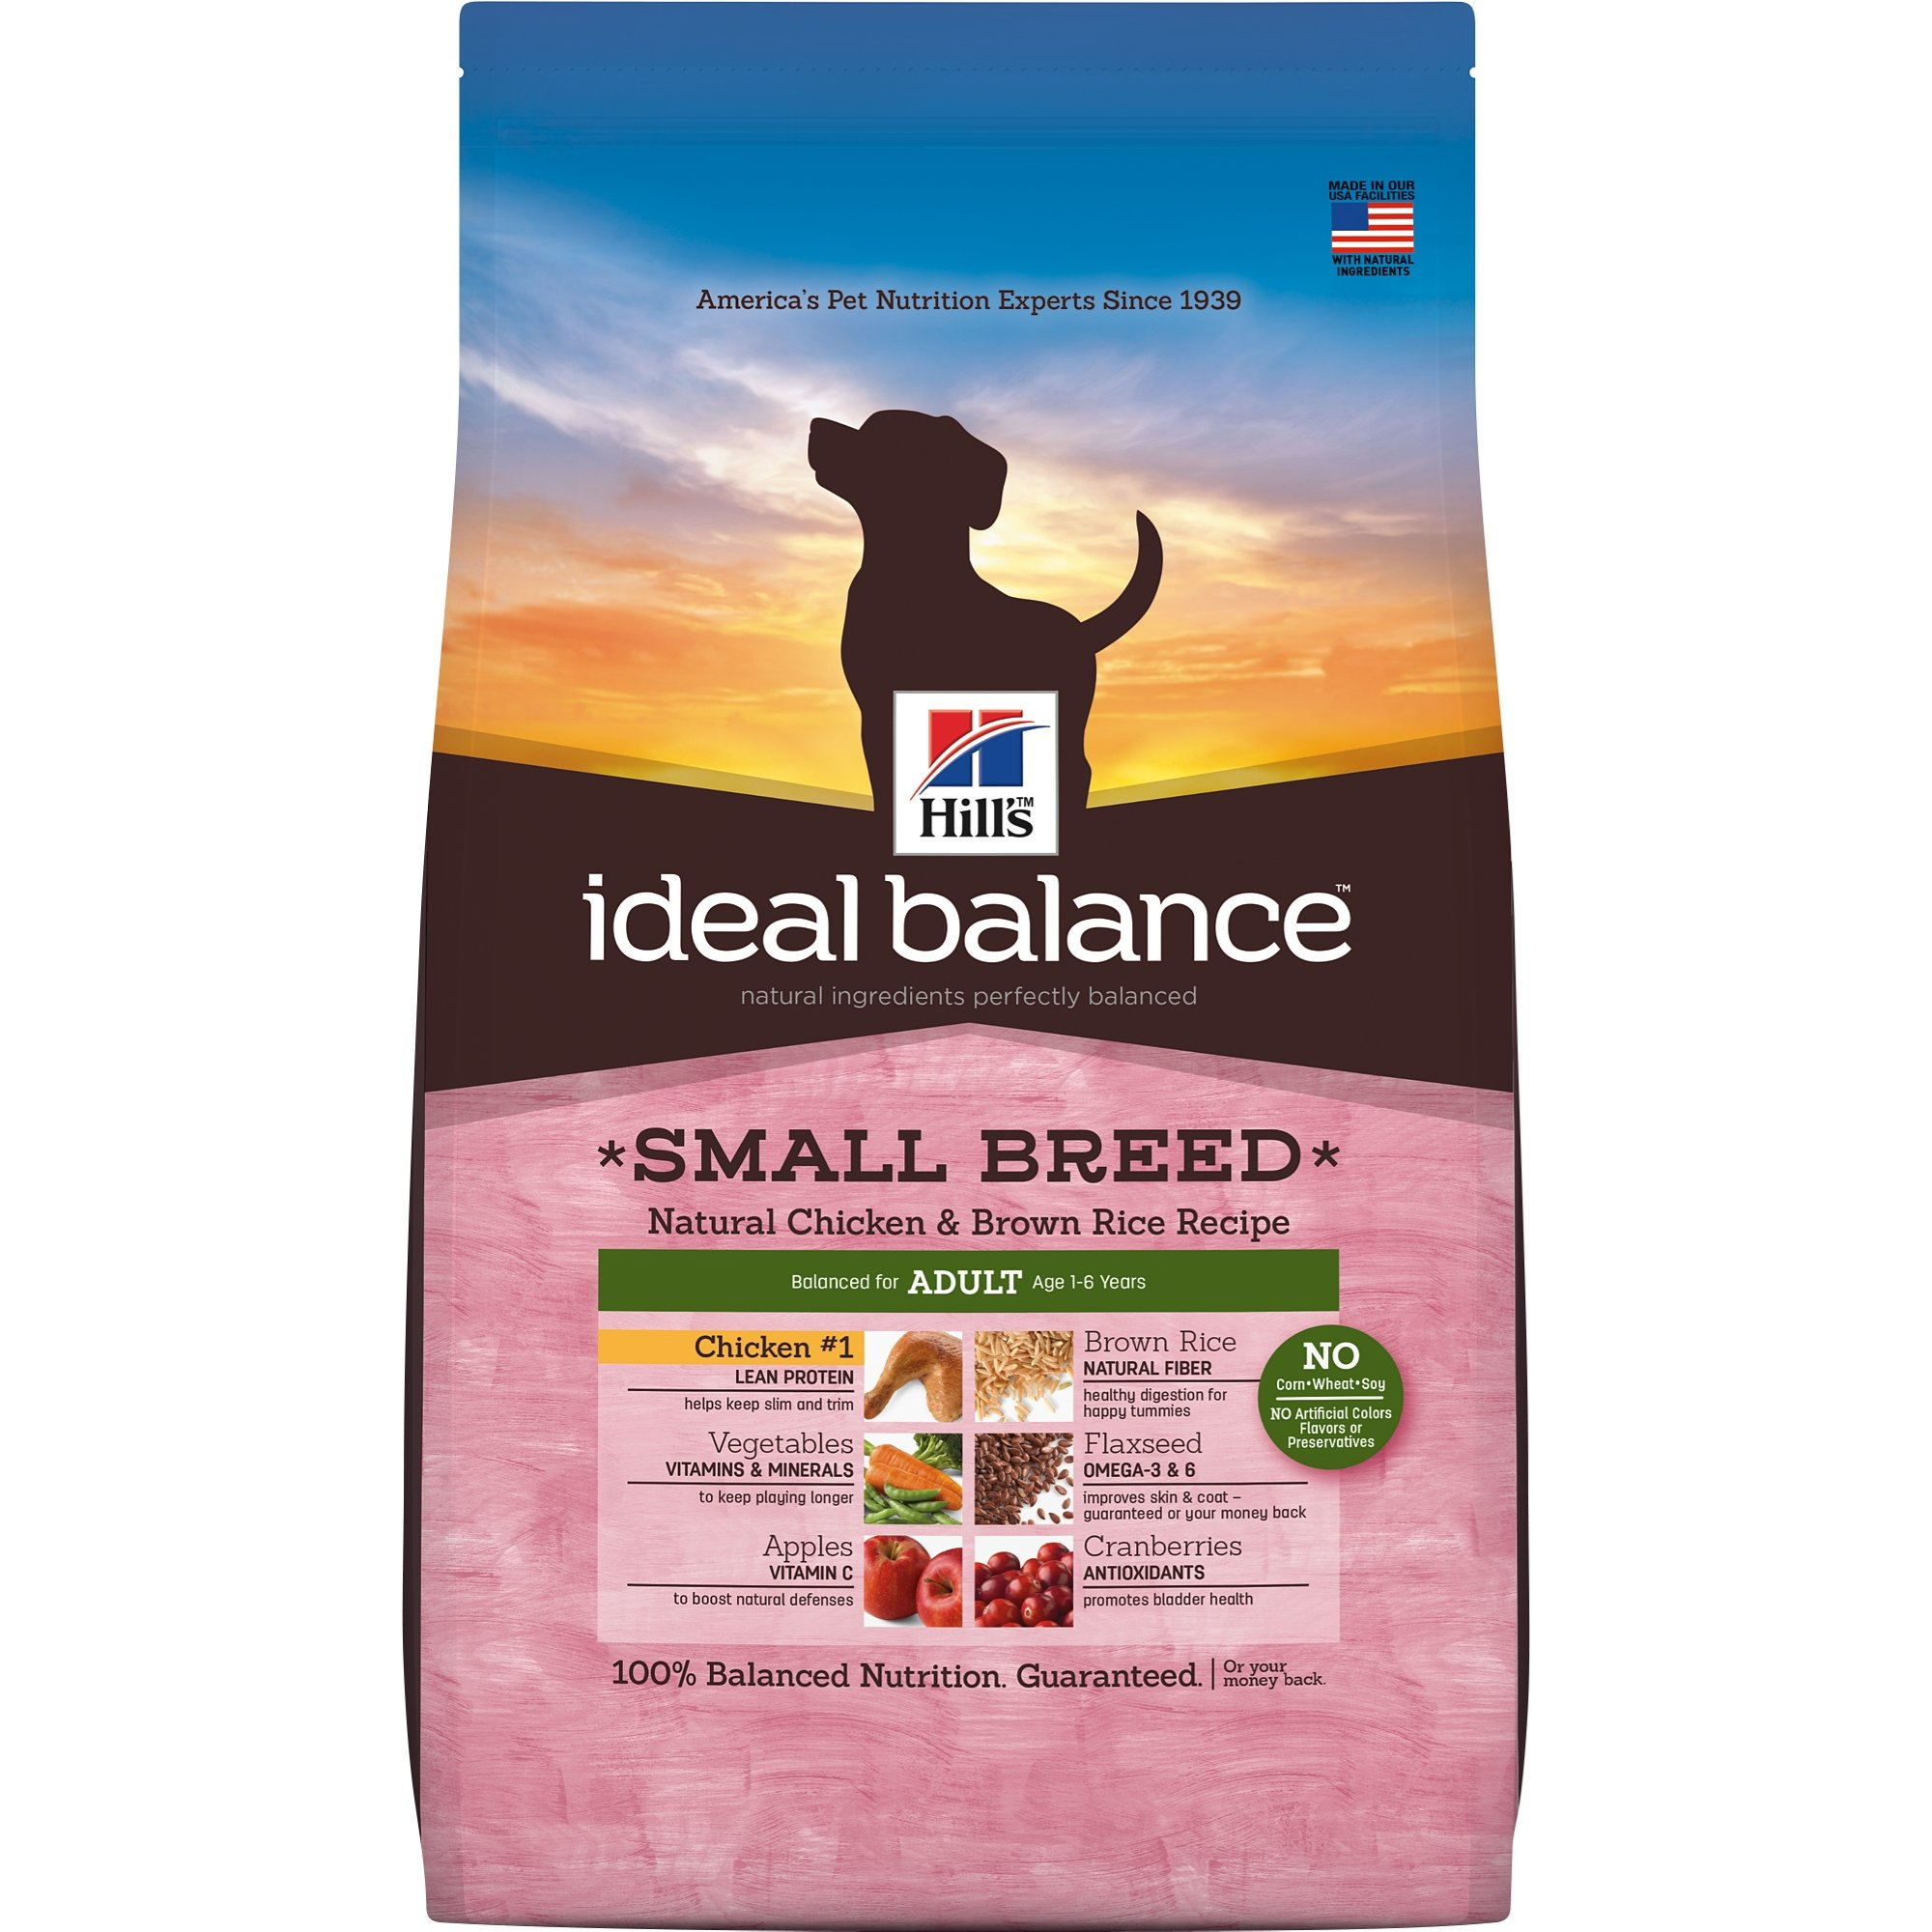 Hill's Ideal Balance Adult Natural Dog Food, Small Breed Chicken & Brown Rice Recipe Dry Dog Food, 4 lb Bag